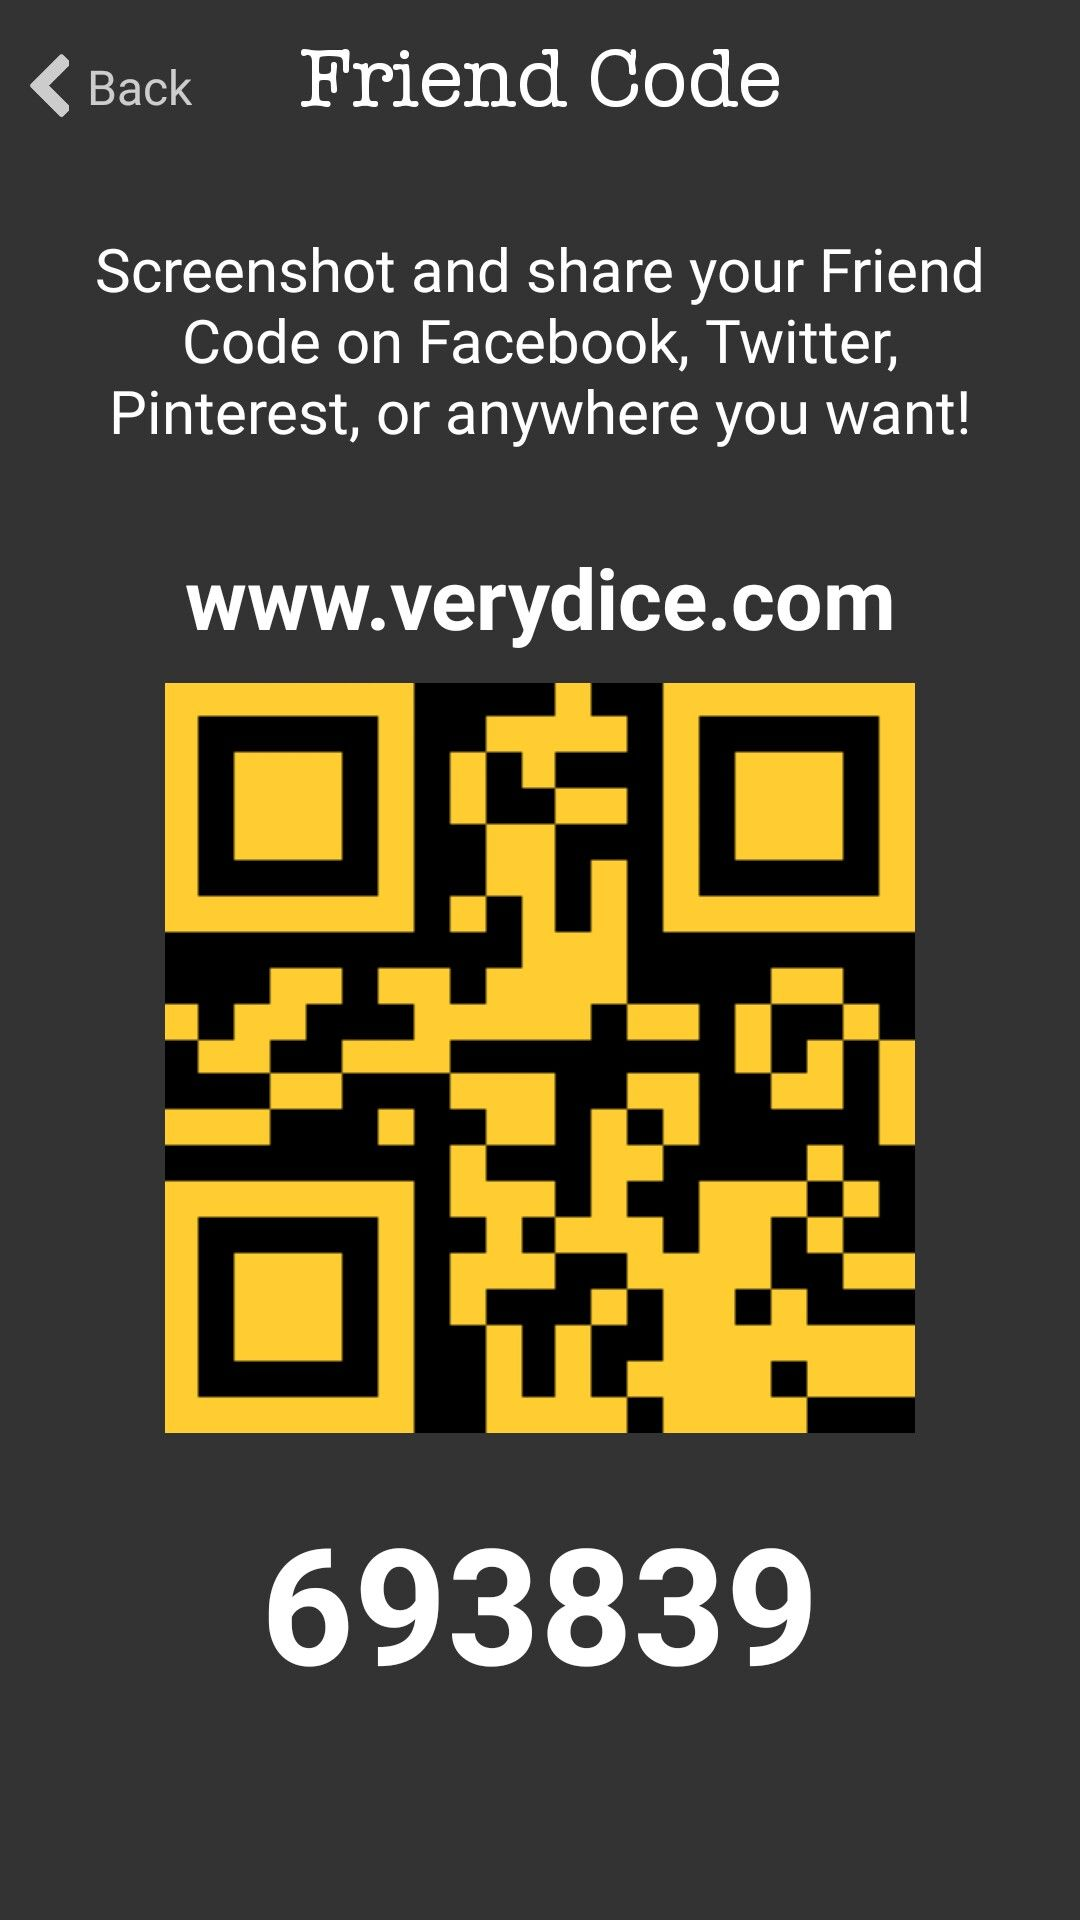 Get free stuff download the verydice app and enter my code